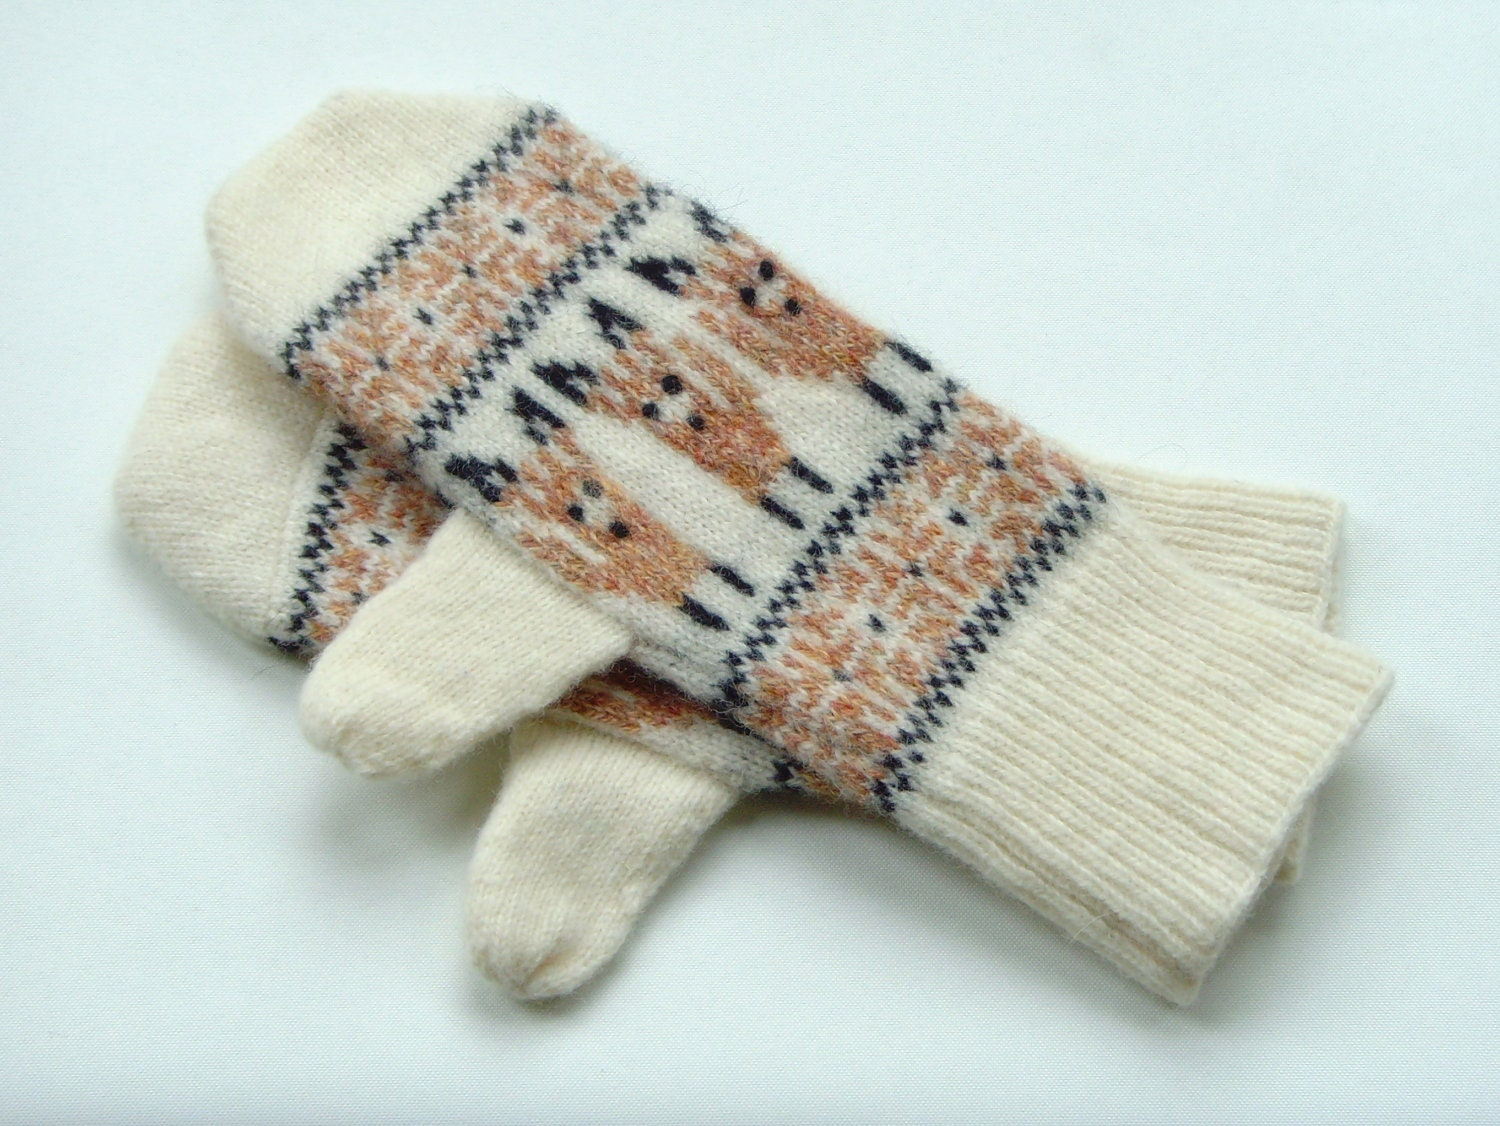 Mittens Fox Mittens in Lambswool Wool Animal Motif Mittens Knitted Mittens Brown Mittens Cream Mittens Fox Gloves Animal Gloves Fairisle